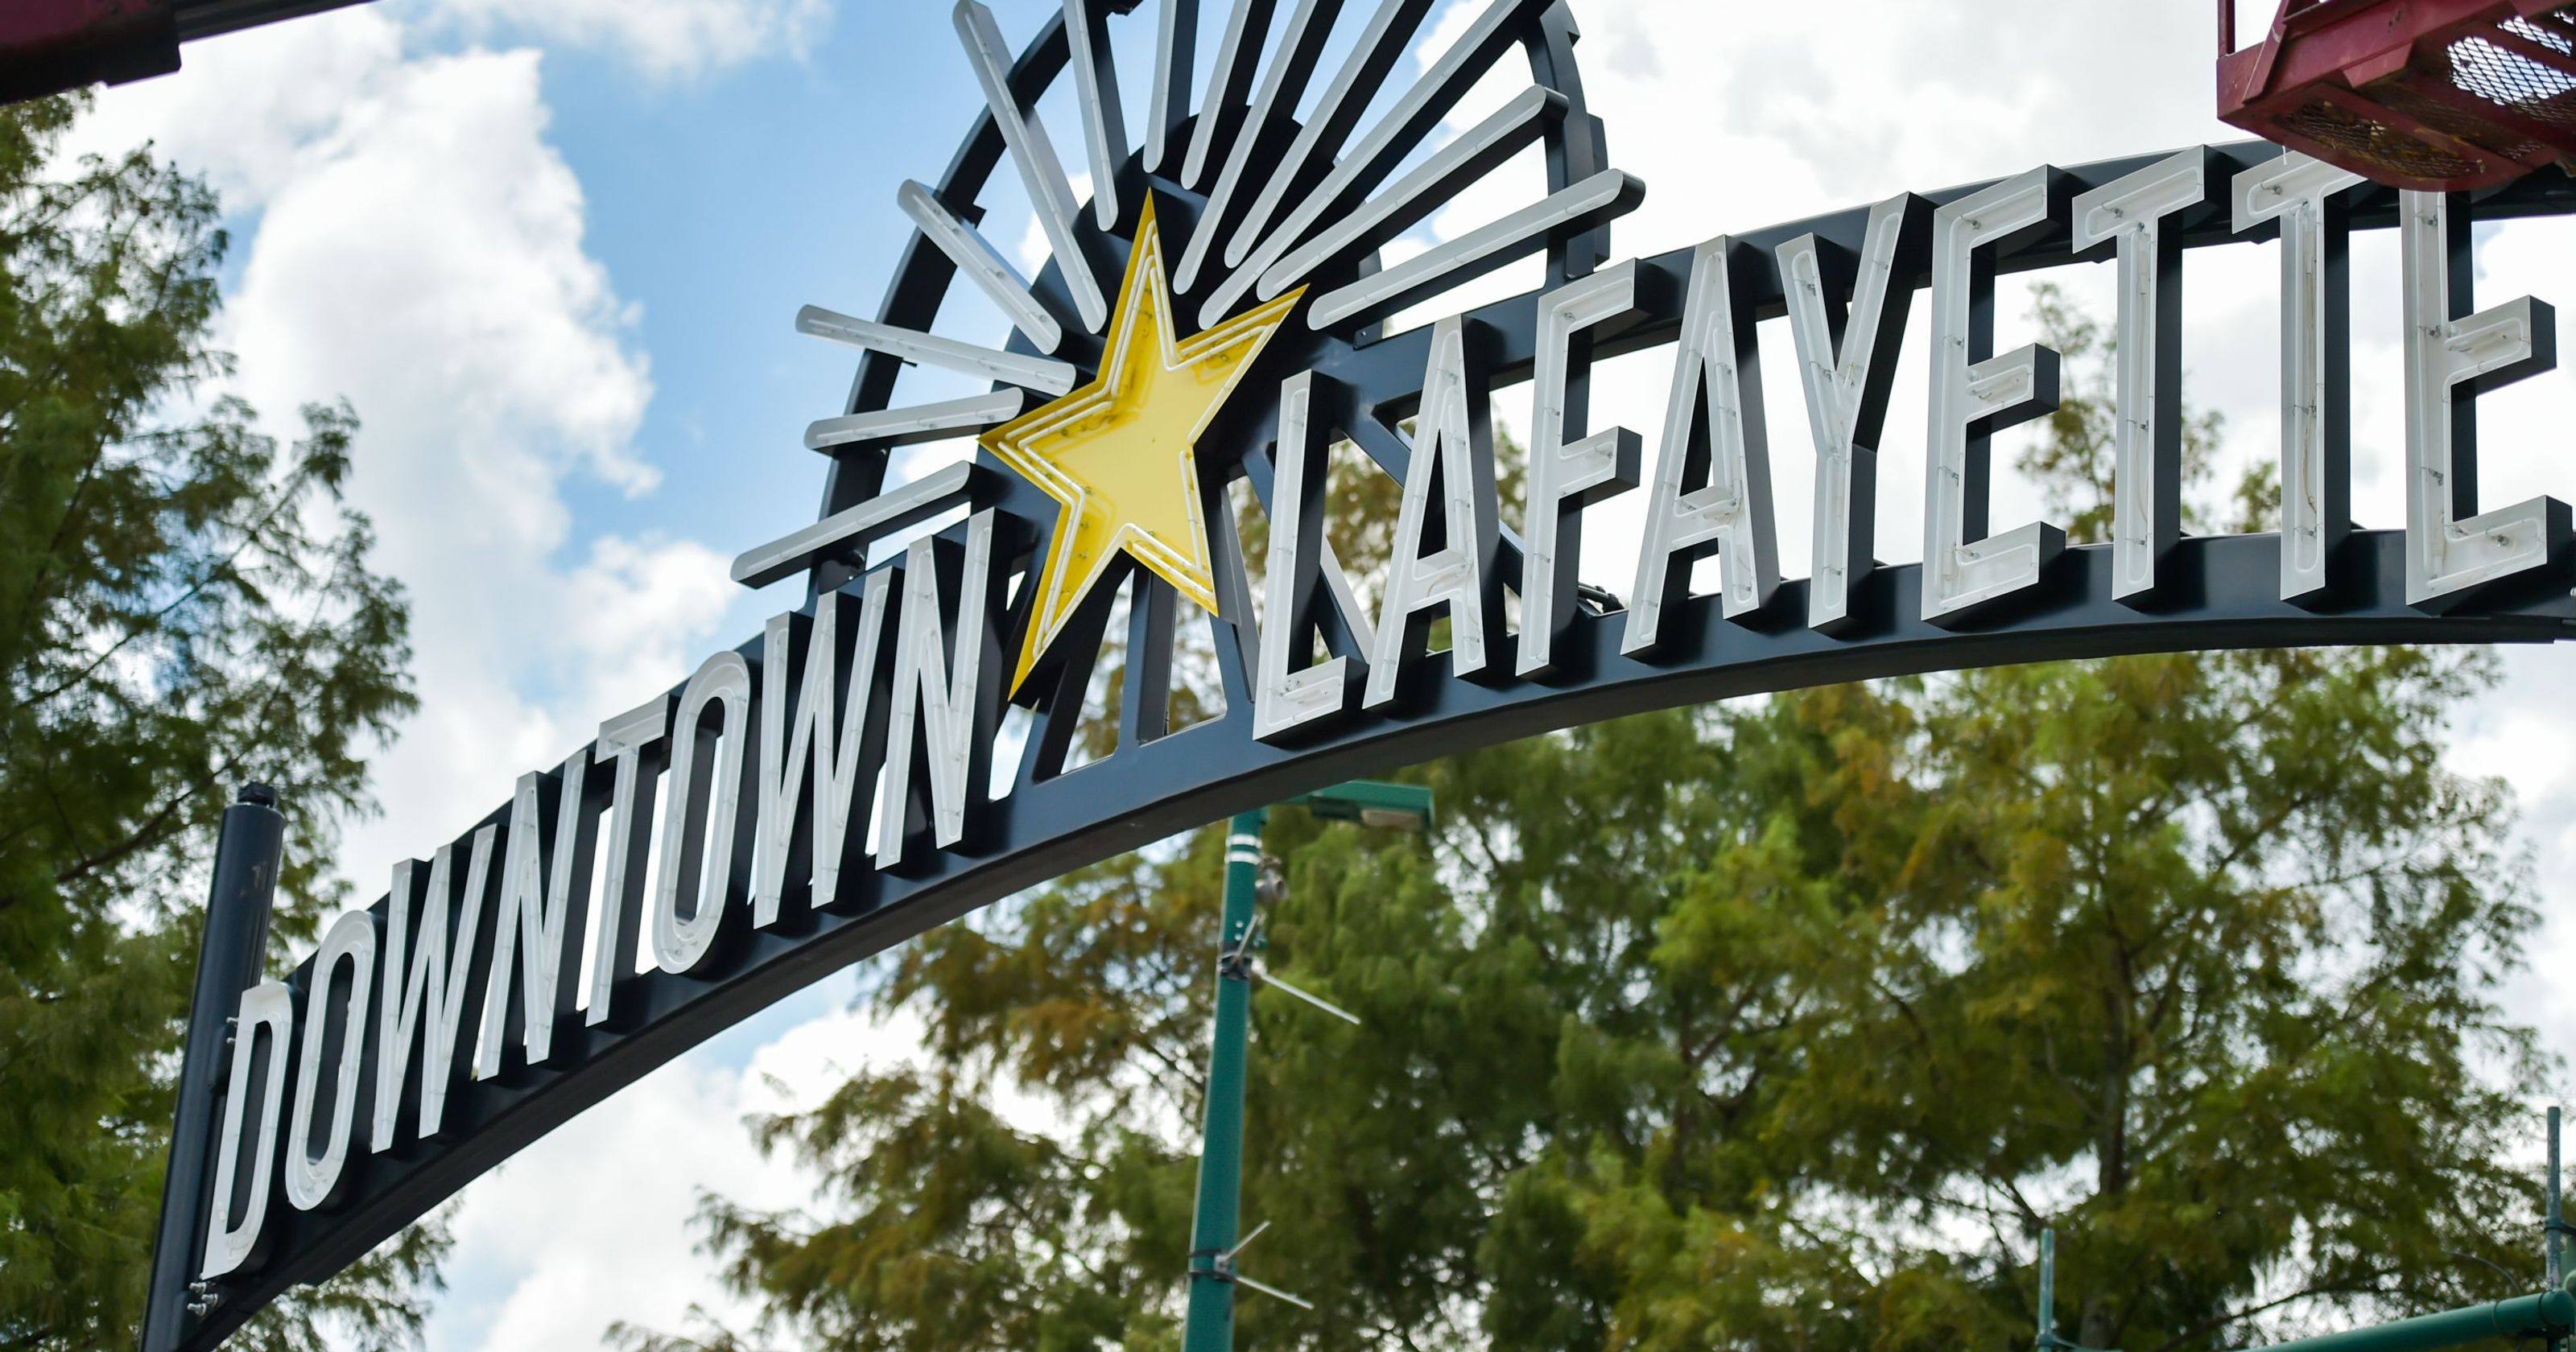 Downtown Lafayette, Marketing Agency Vested